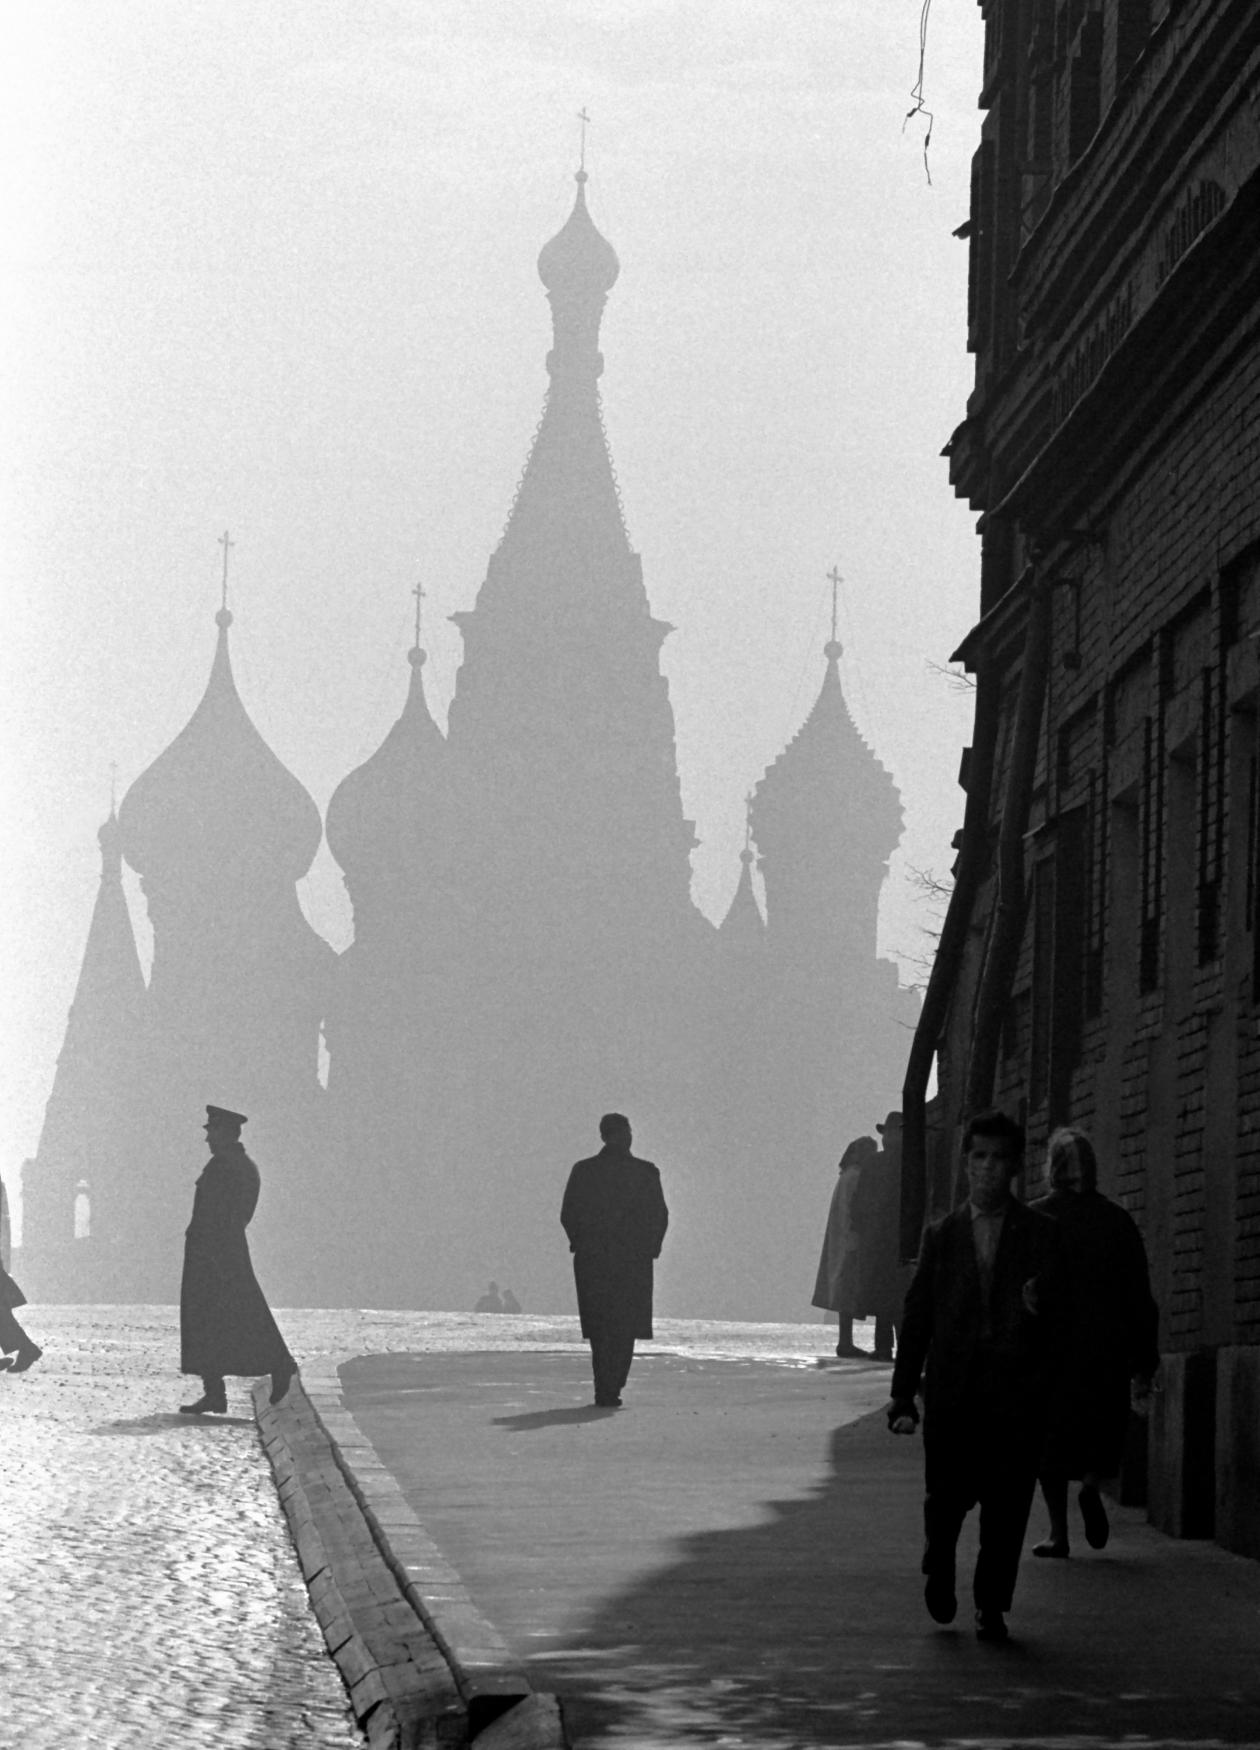 A few people walk on a wide sidewalk, with the shadow of the kremlin rising through the mist in the background